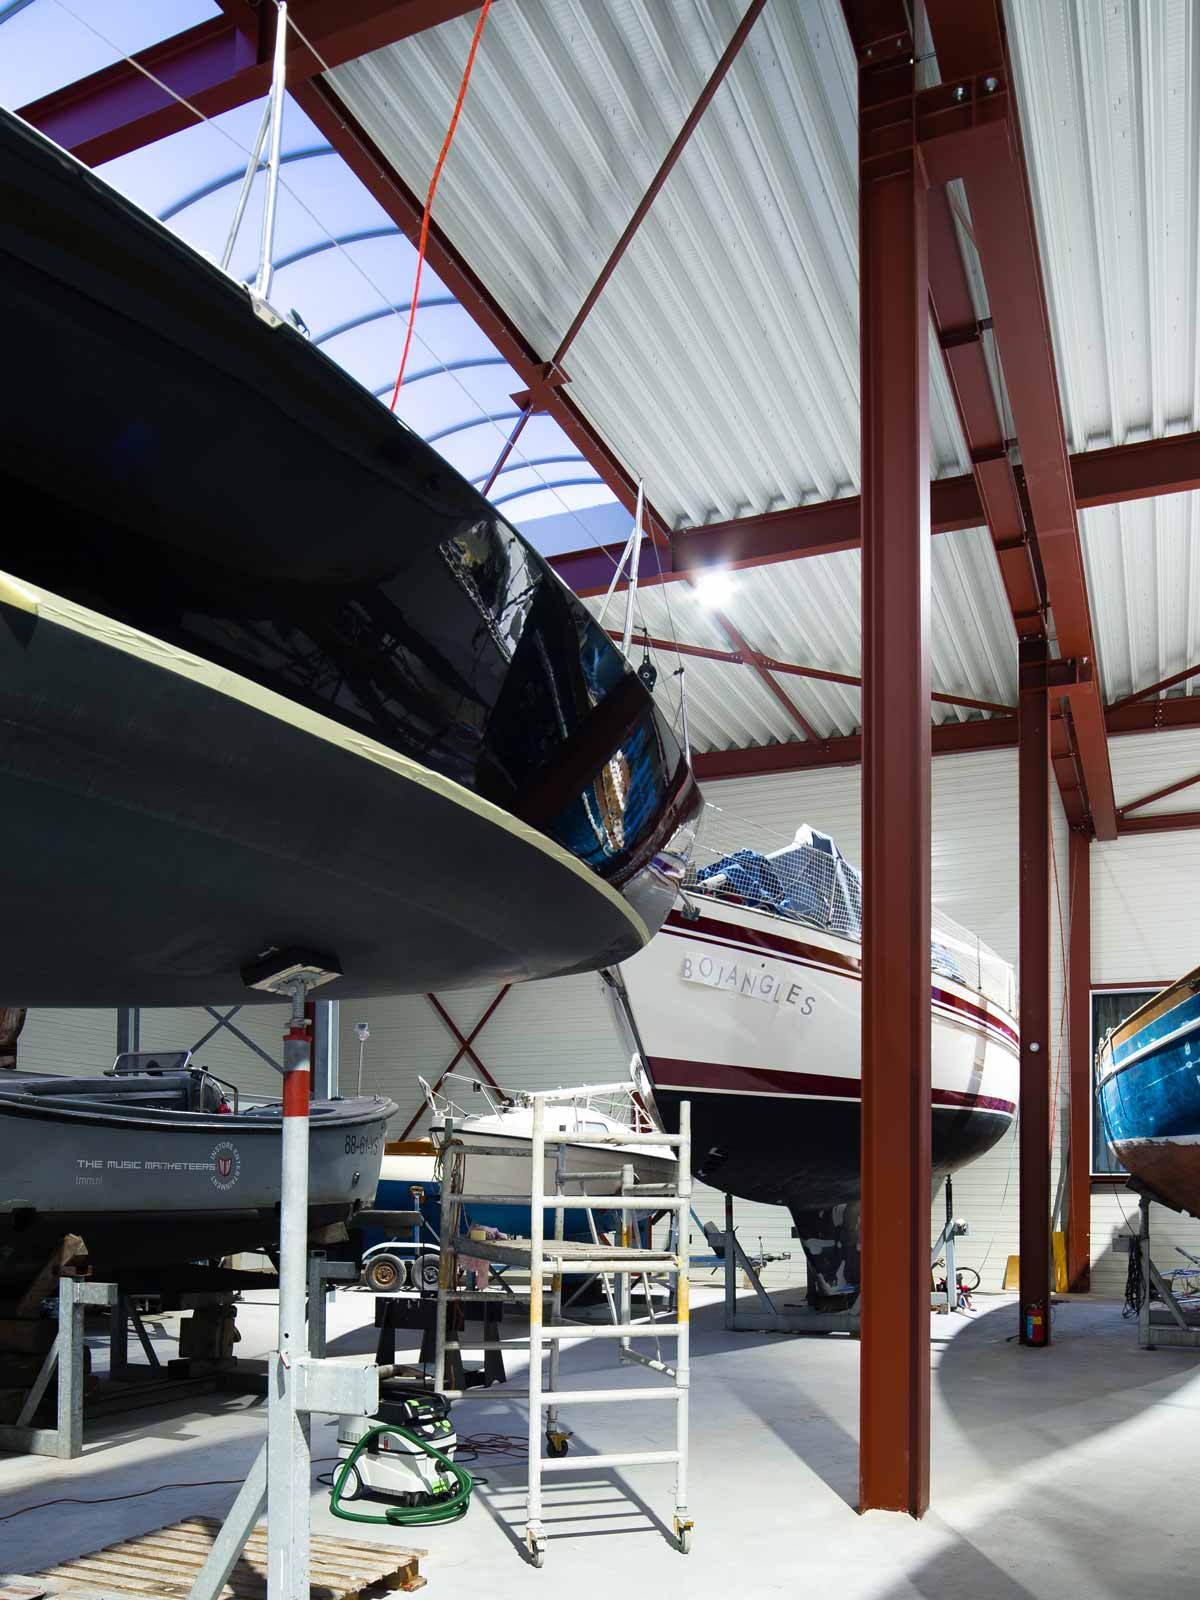 interior photo showing several yachts under repair in Boat Hangar by BETA